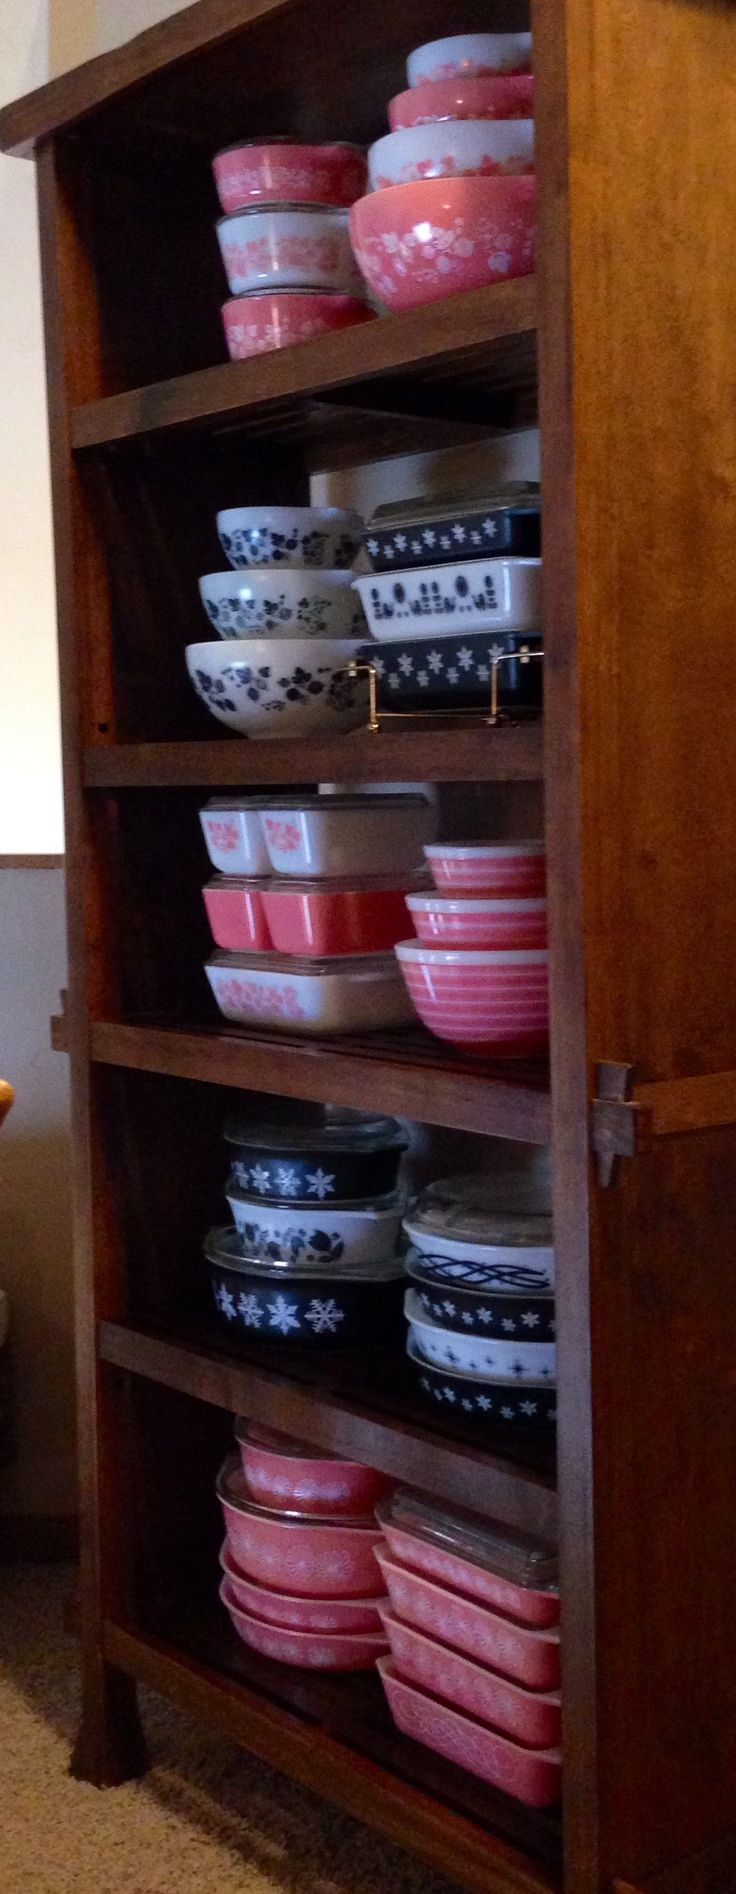 Pyrex collection...wish I could find some those black snowflake casseroles to replace my Mom's that broke!!!